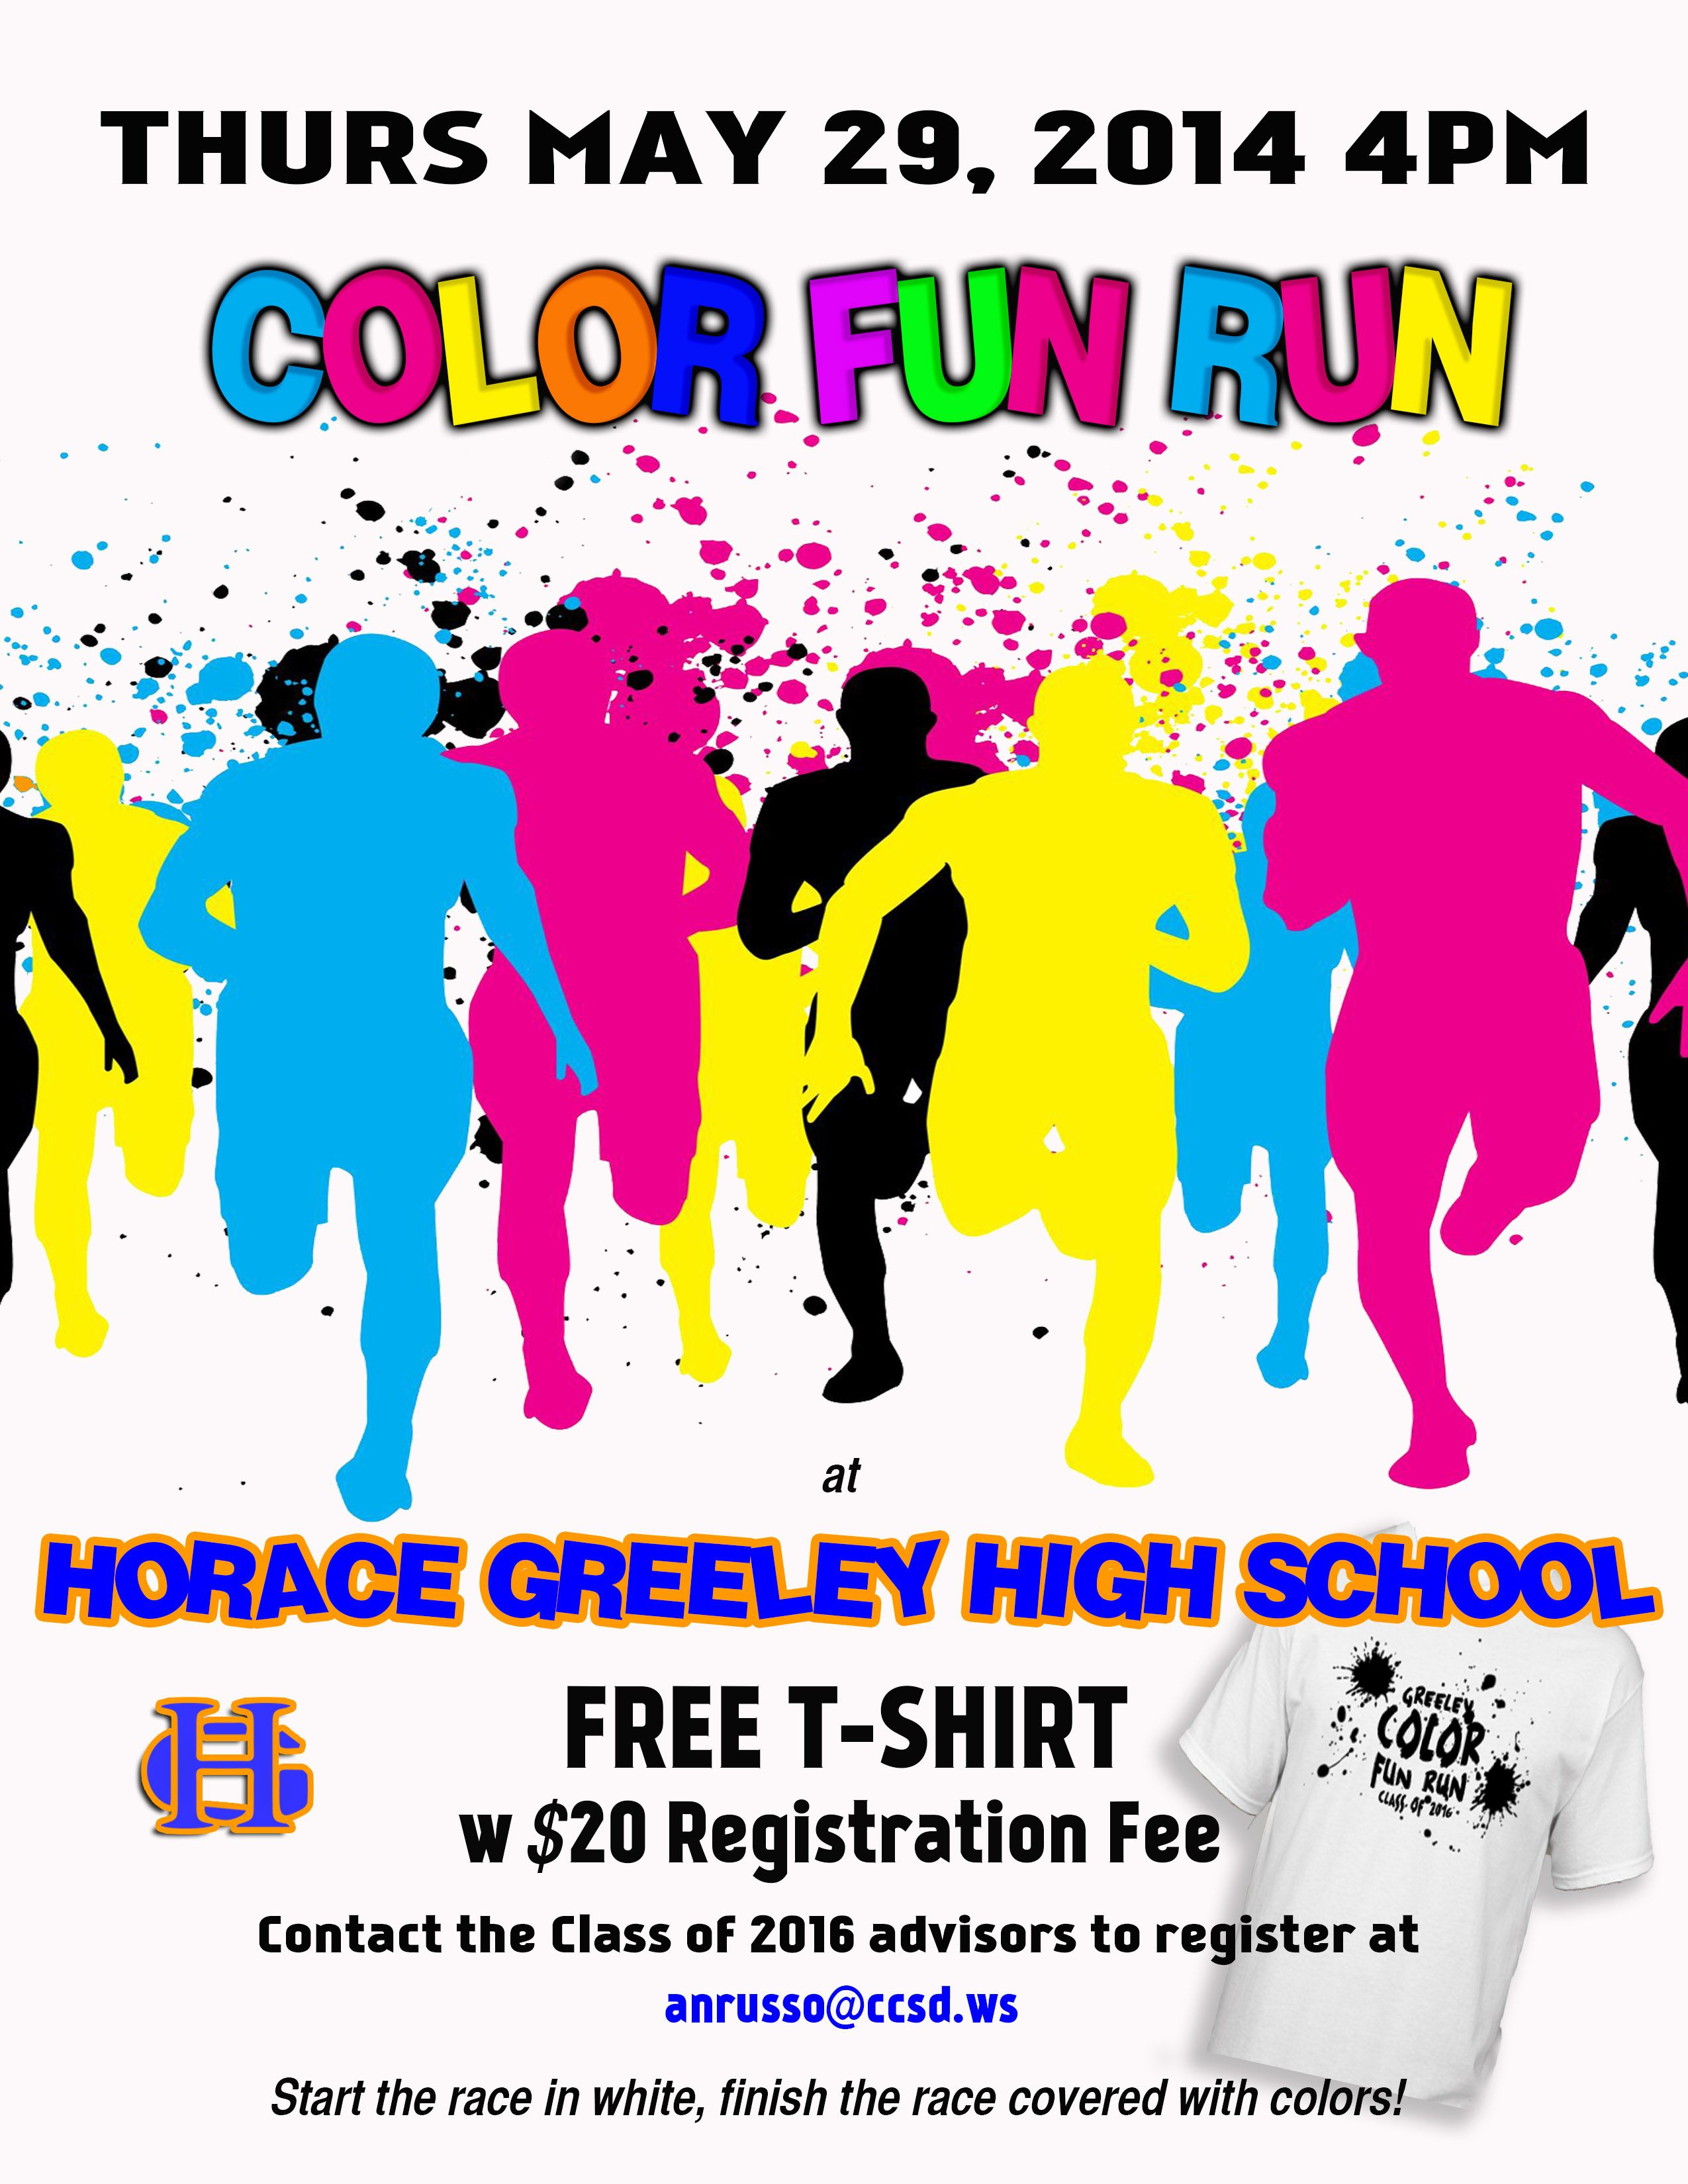 Ie Design For Color Fun Run At Horace Greeley High School Design